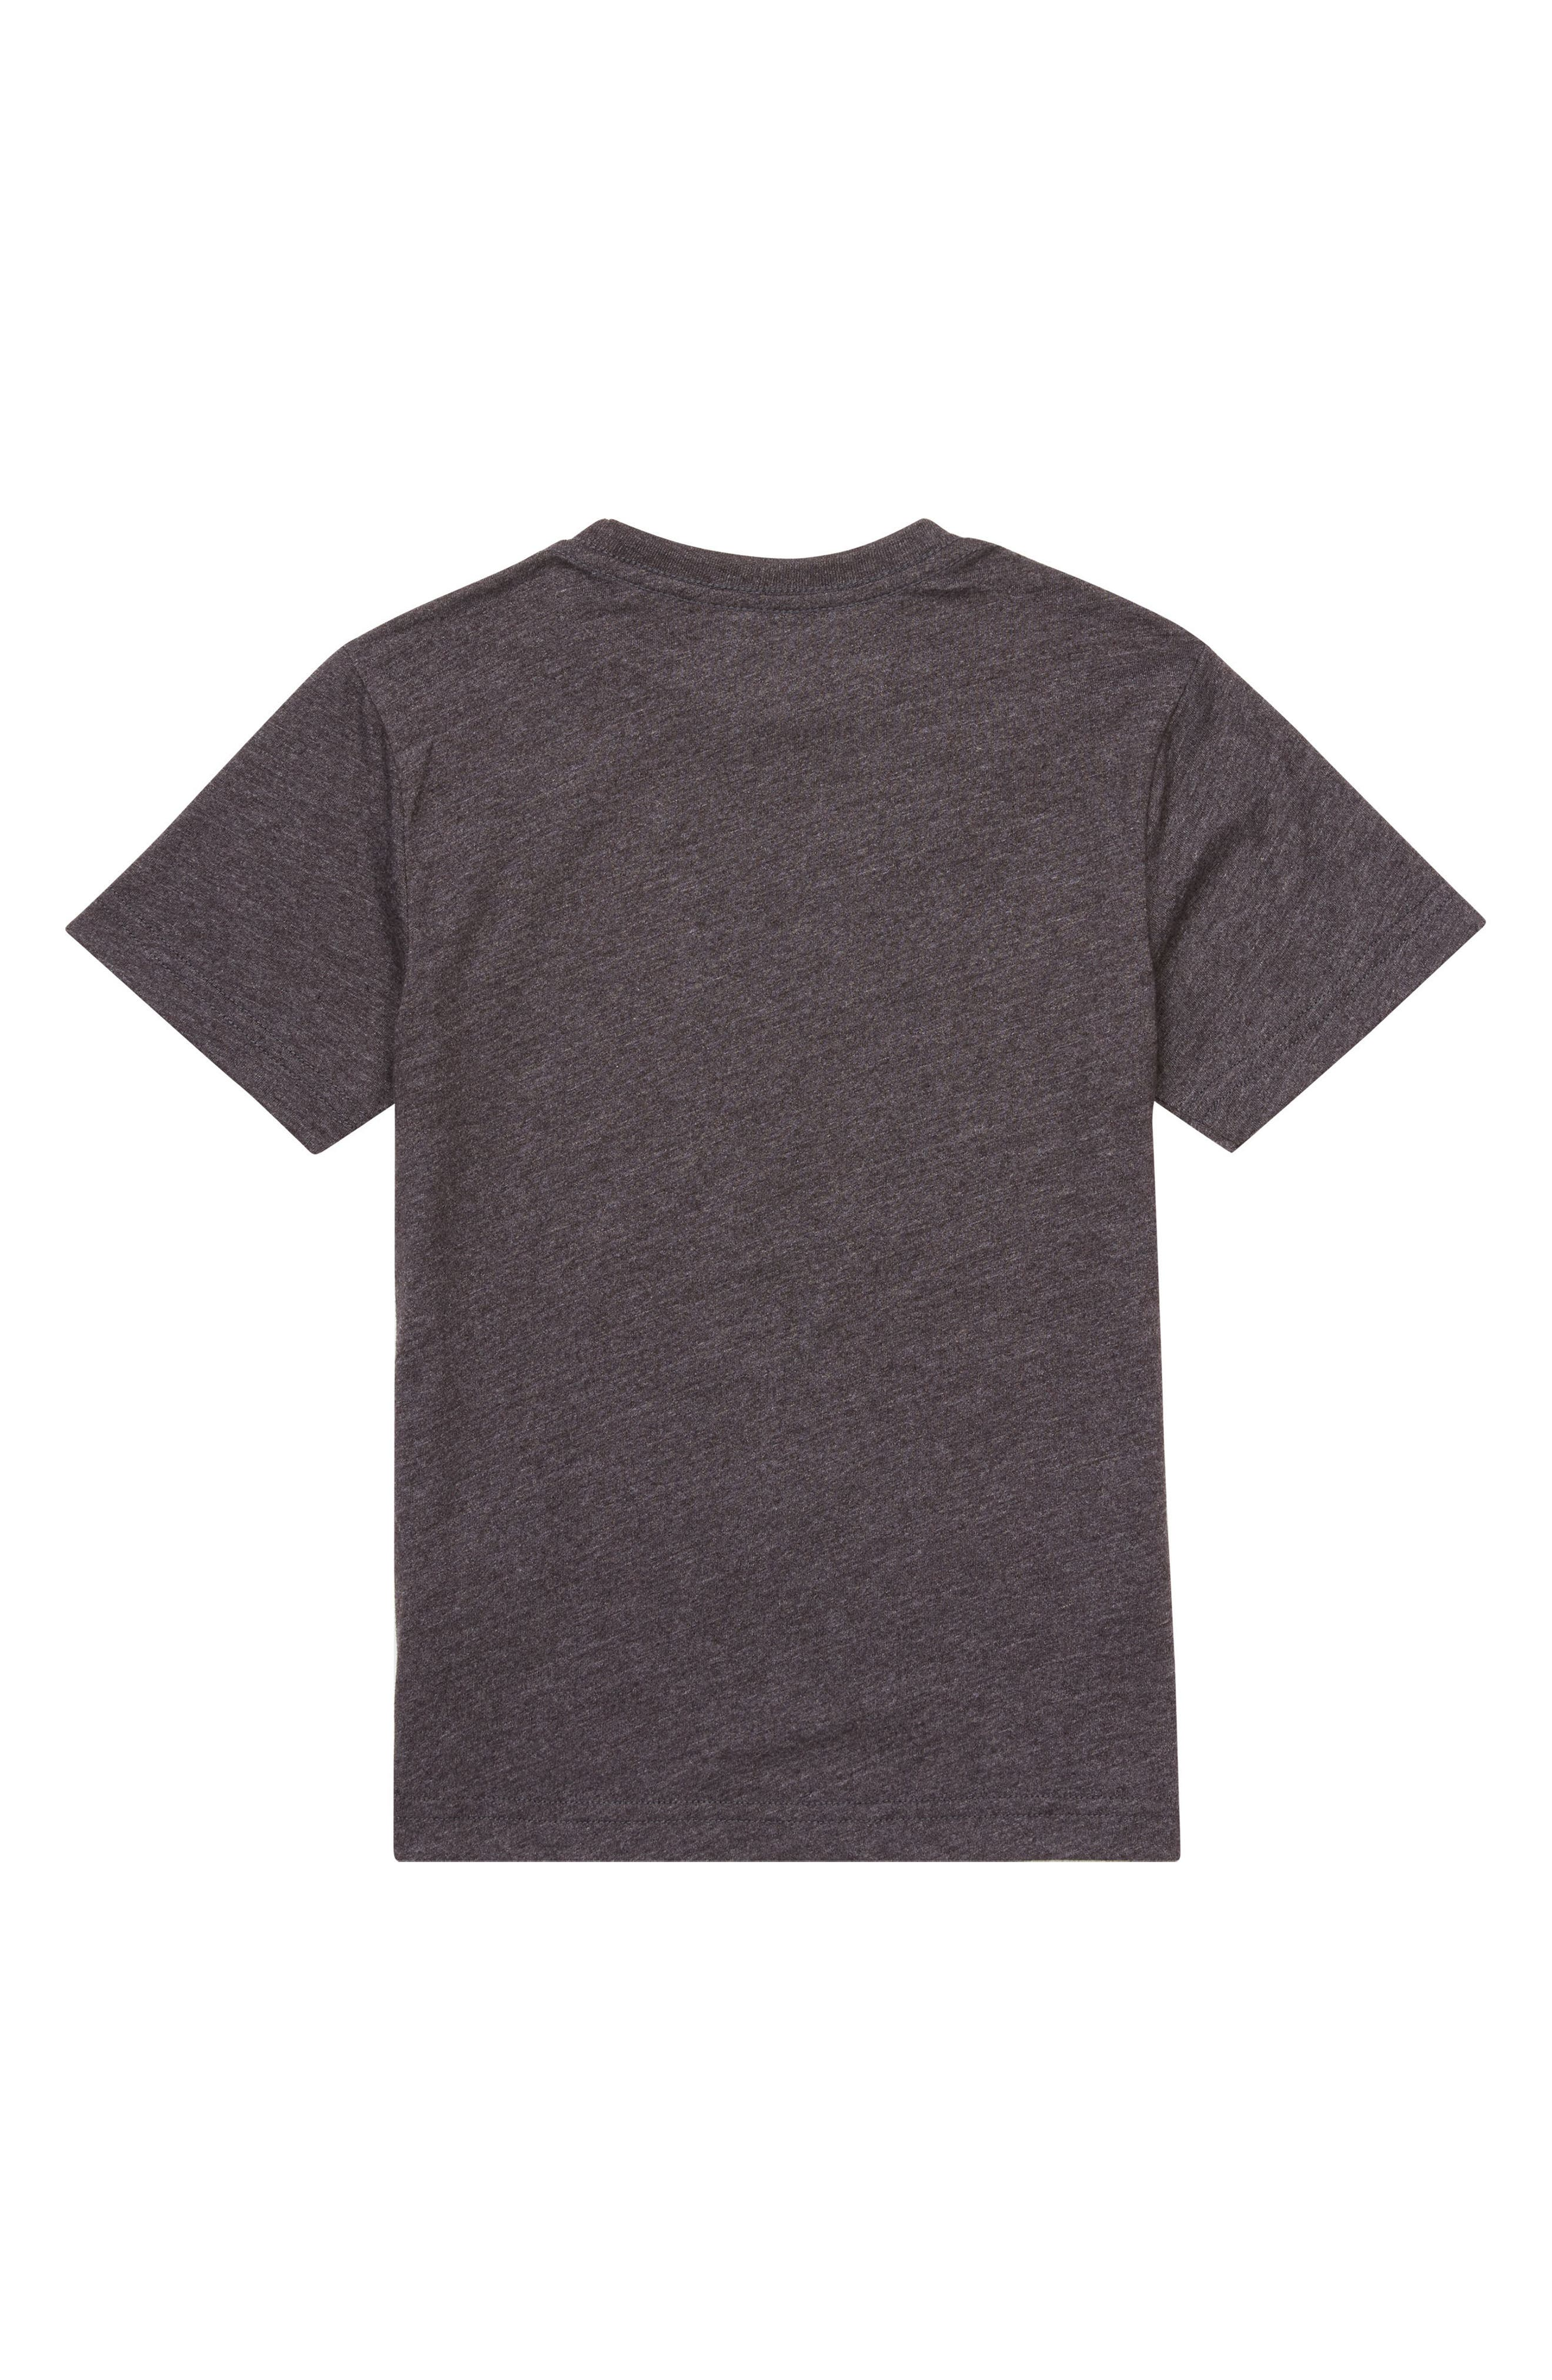 Maag Graphic T-Shirt,                             Alternate thumbnail 2, color,                             001